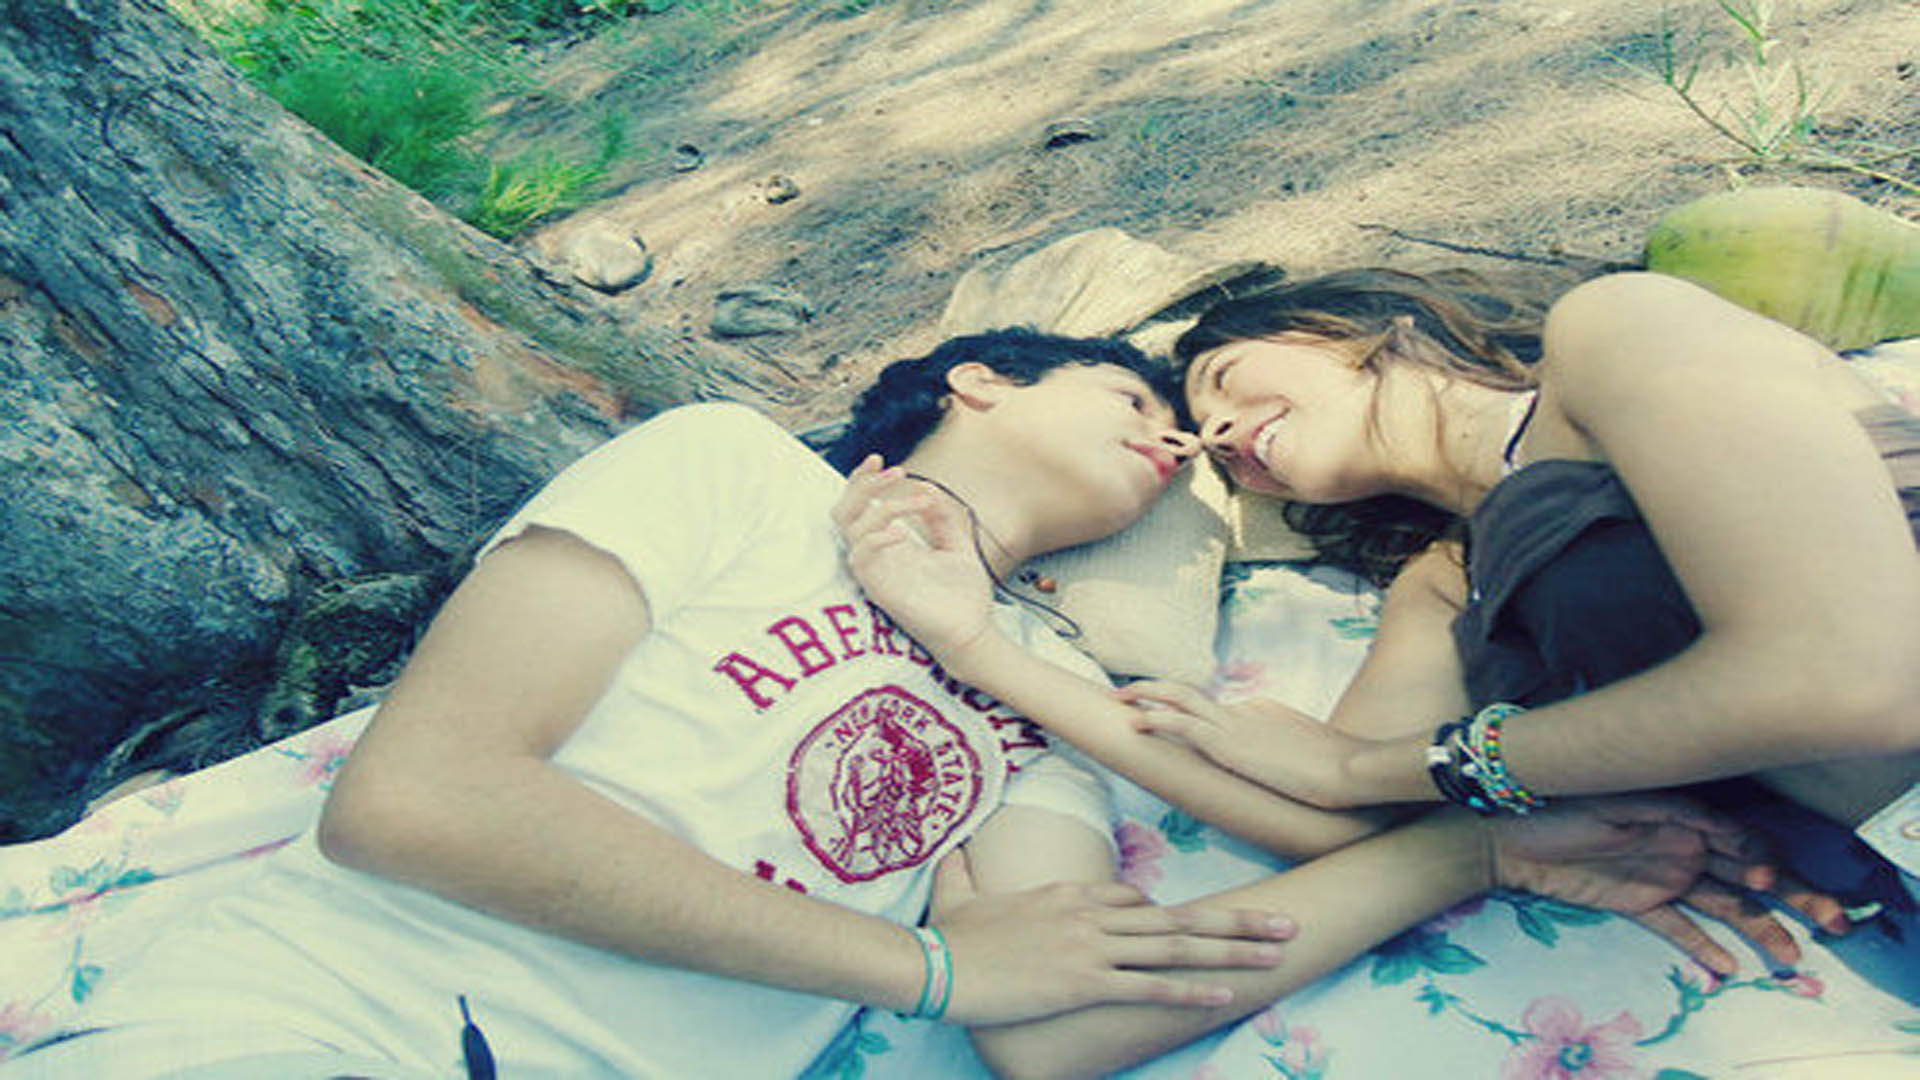 boy and girl love images sf wallpaper